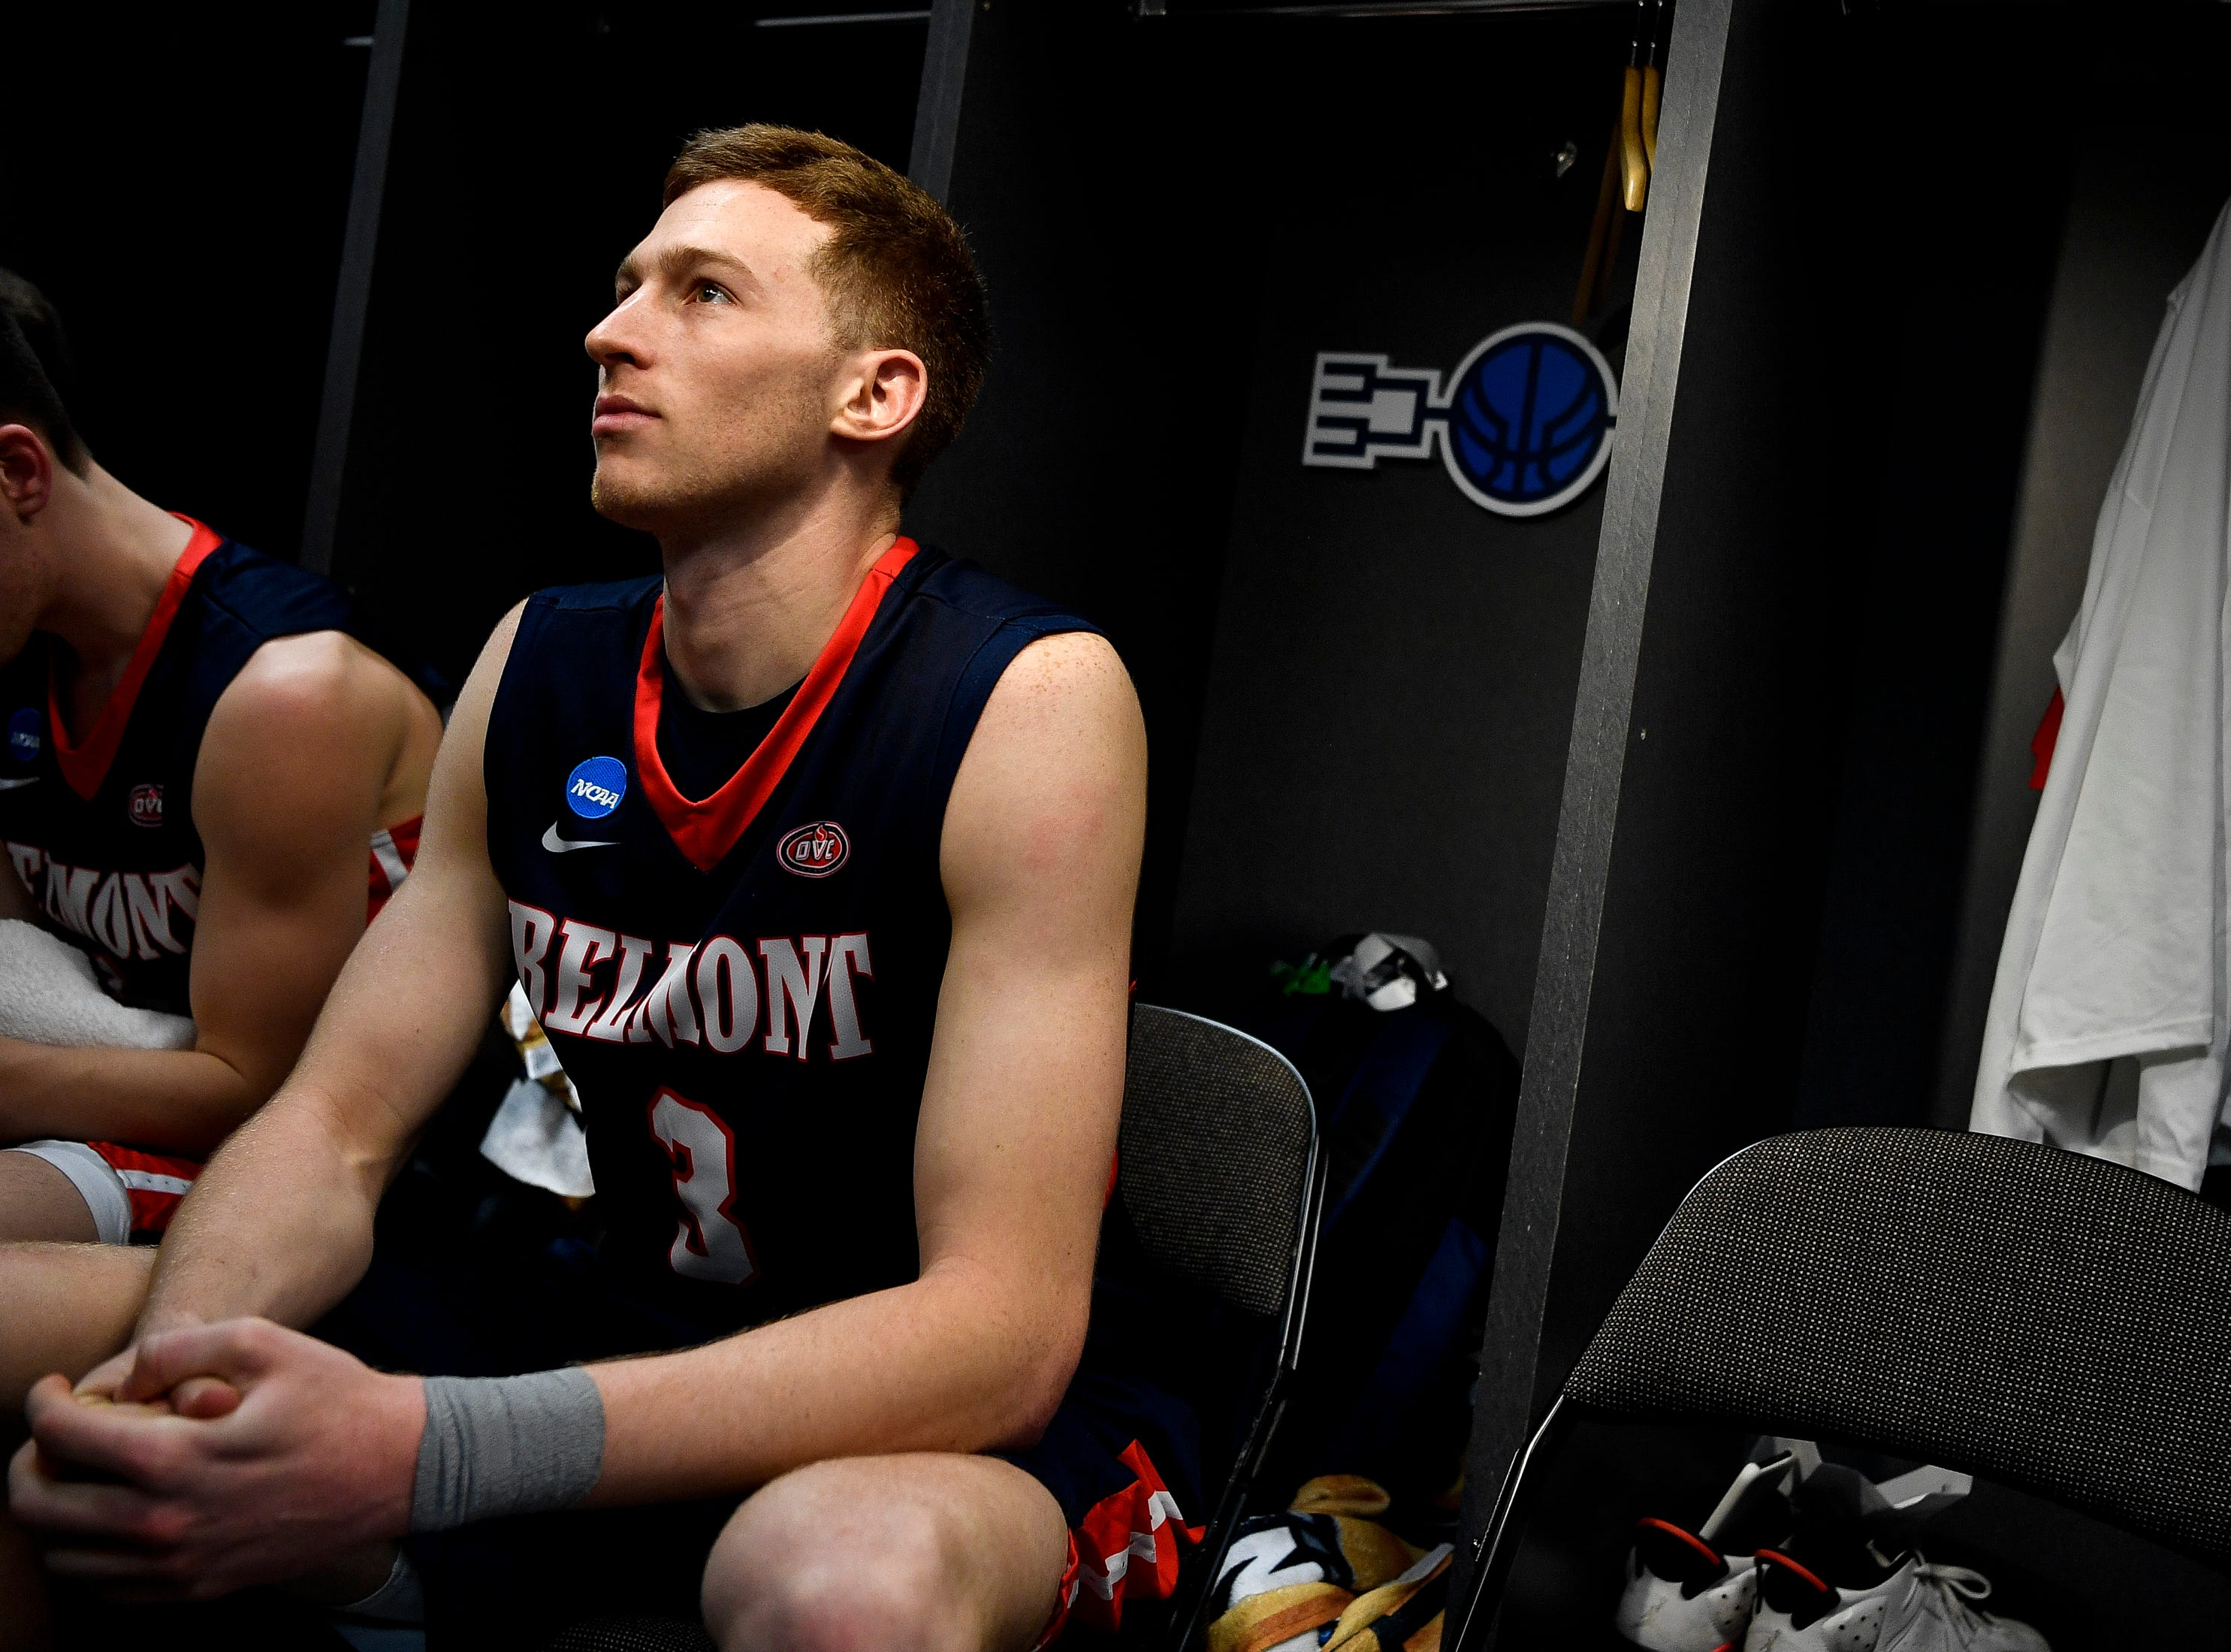 Belmont guard/forward Dylan Windler (3) speaks to reporters in the locker room after their first-round NCAA college basketball tournament loss to Maryland at VyStar Veterans Memorial Arena in Jacksonville, Fla., Thursday, March 21, 2019.